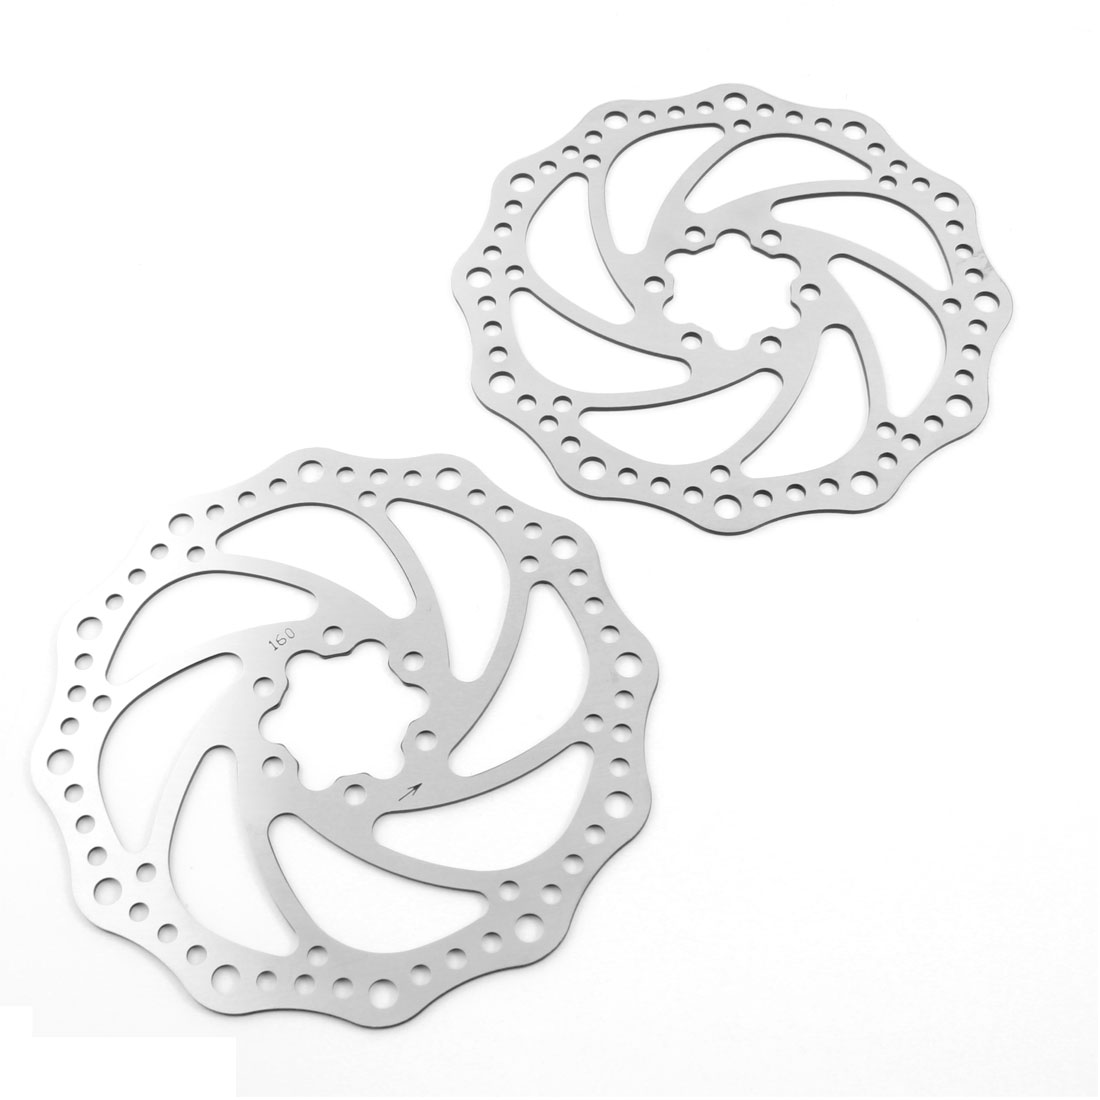 "2 Pcs Bicycle Bike Replacement Metal 6.3"" Diameter Rear Brake Disc Rotor"